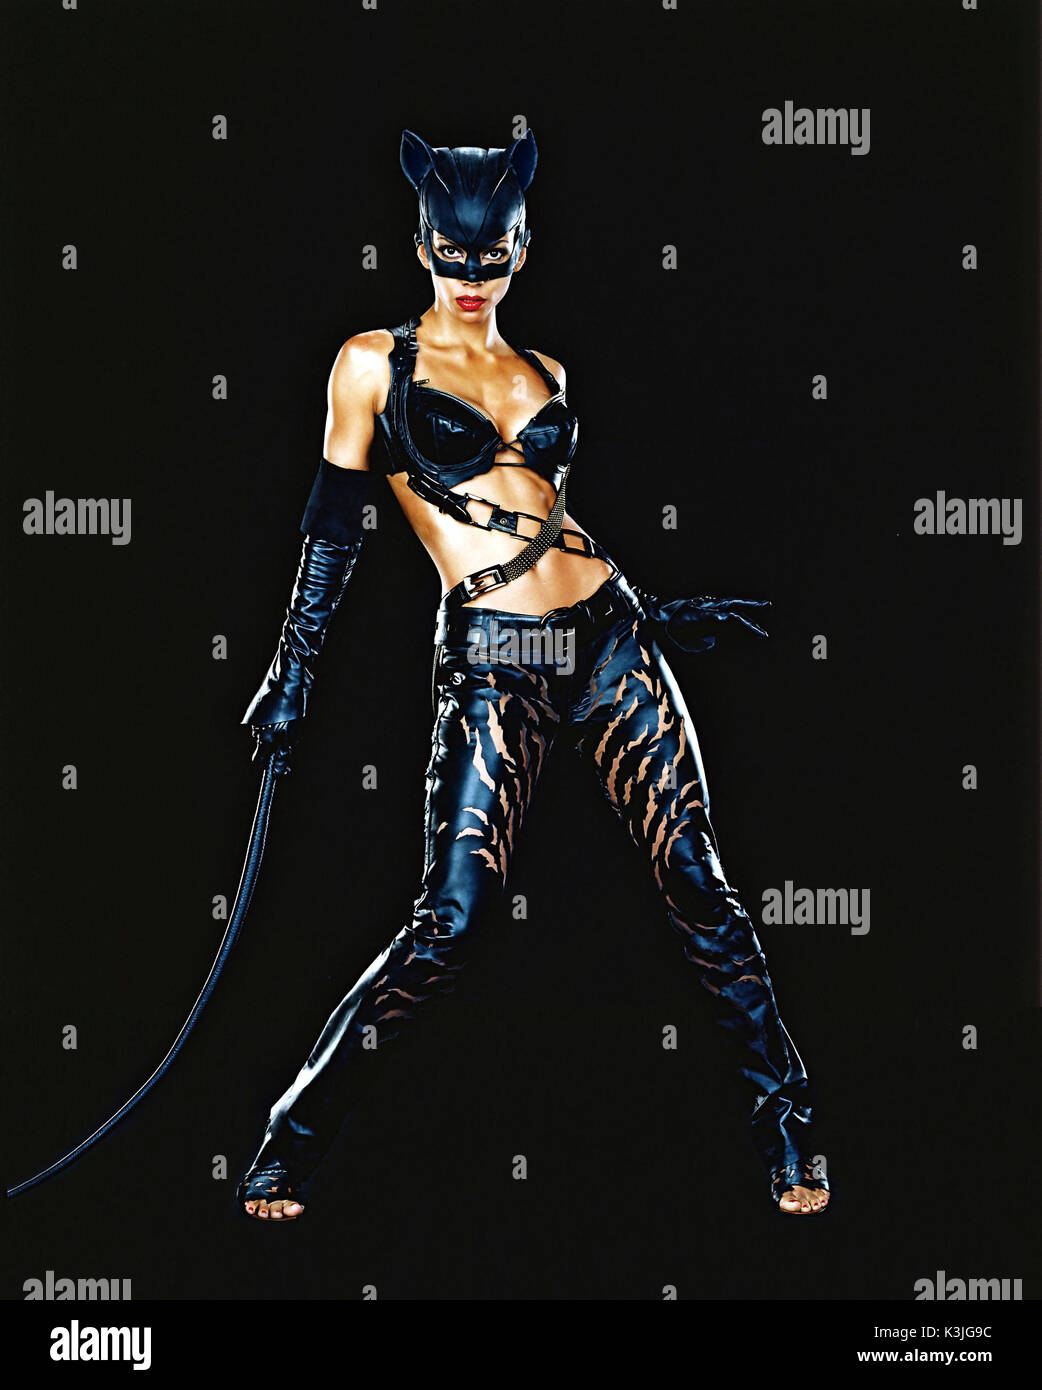 Halle Berry Catwoman Stock Photos Halle Berry Catwoman Stock